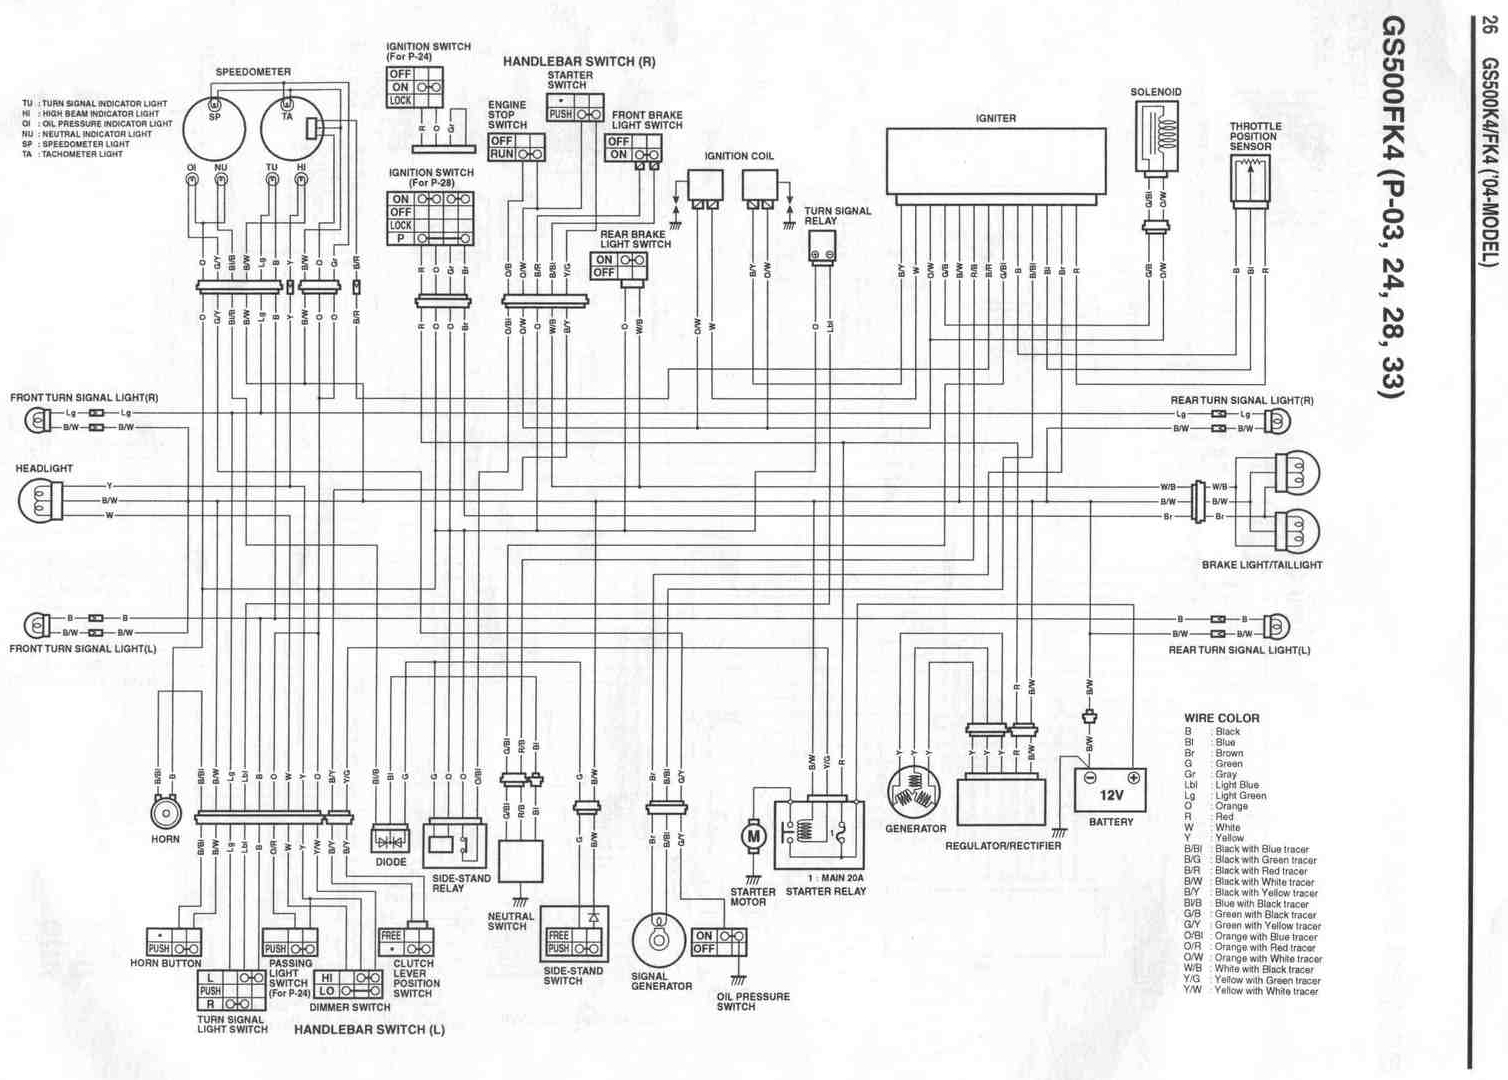 Super Suzuki Ltz 250 Wiring Diagram Basic Electronics Wiring Diagram Wiring Cloud Nuvitbieswglorg